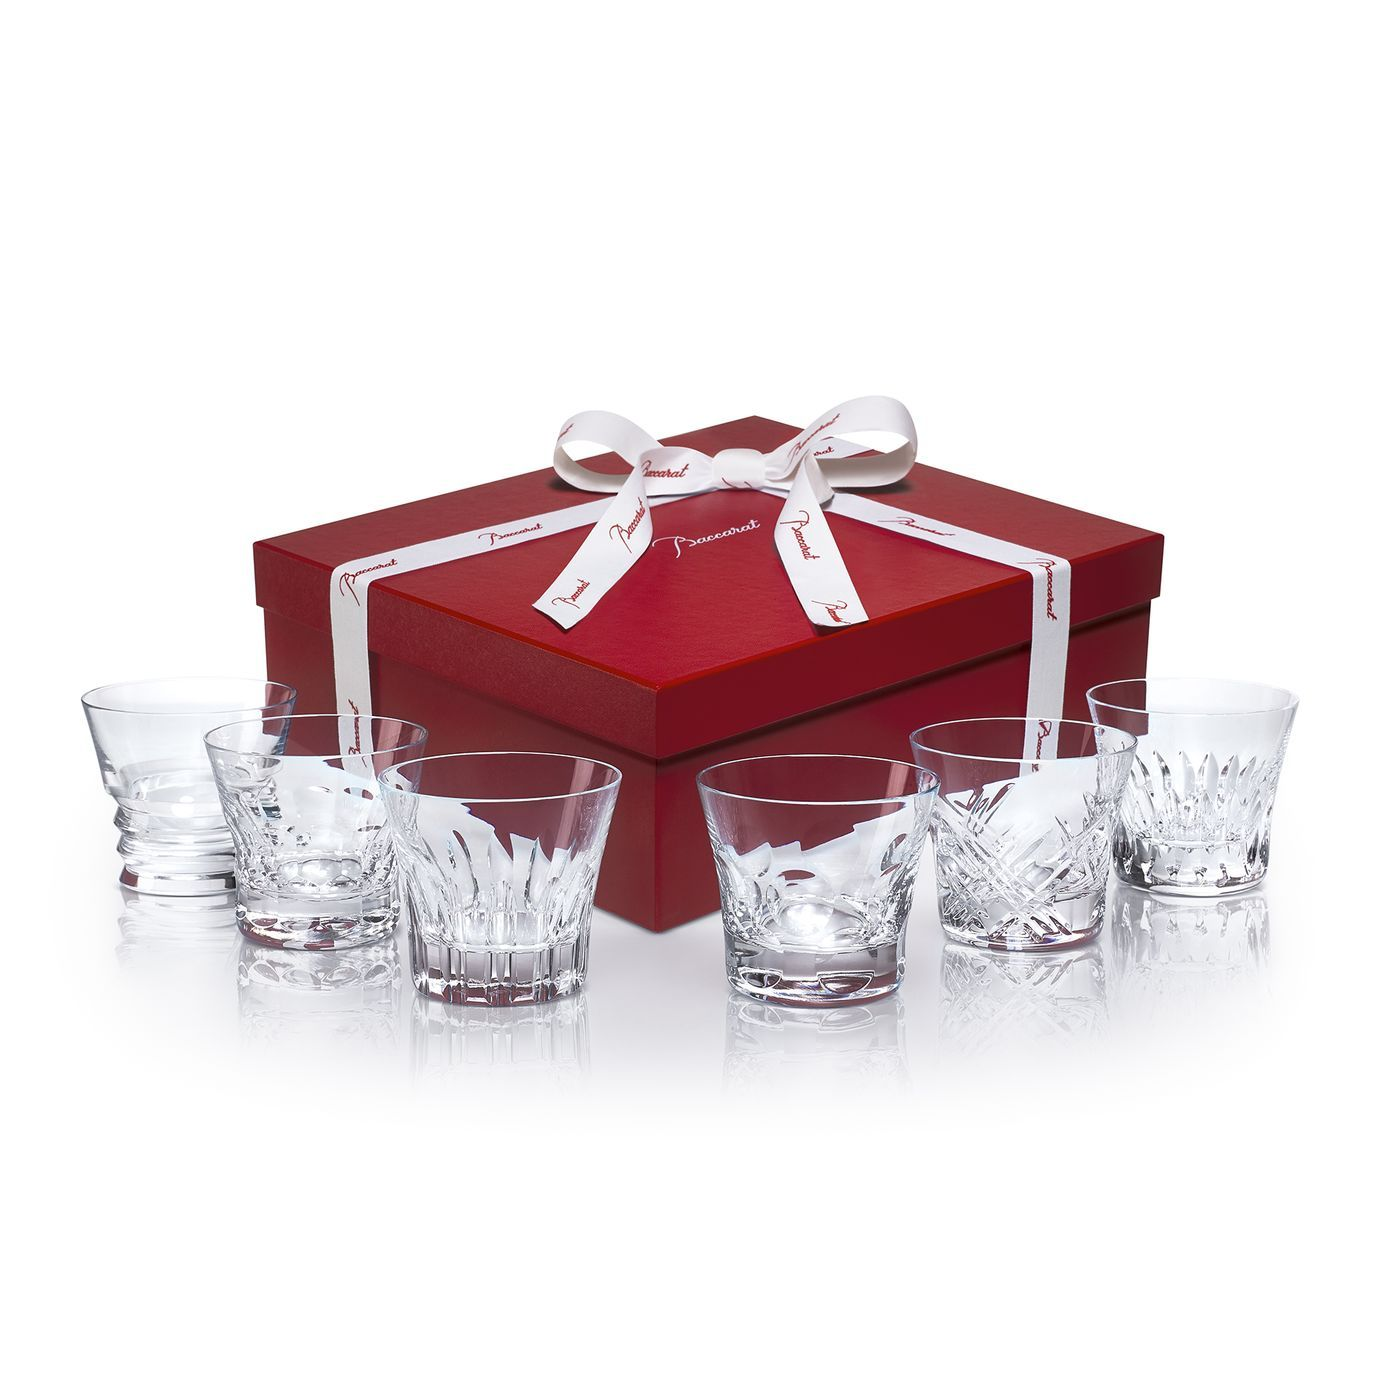 Everyday Baccarat Classic Baccarat Crystal Baccarat Crystal Stemware